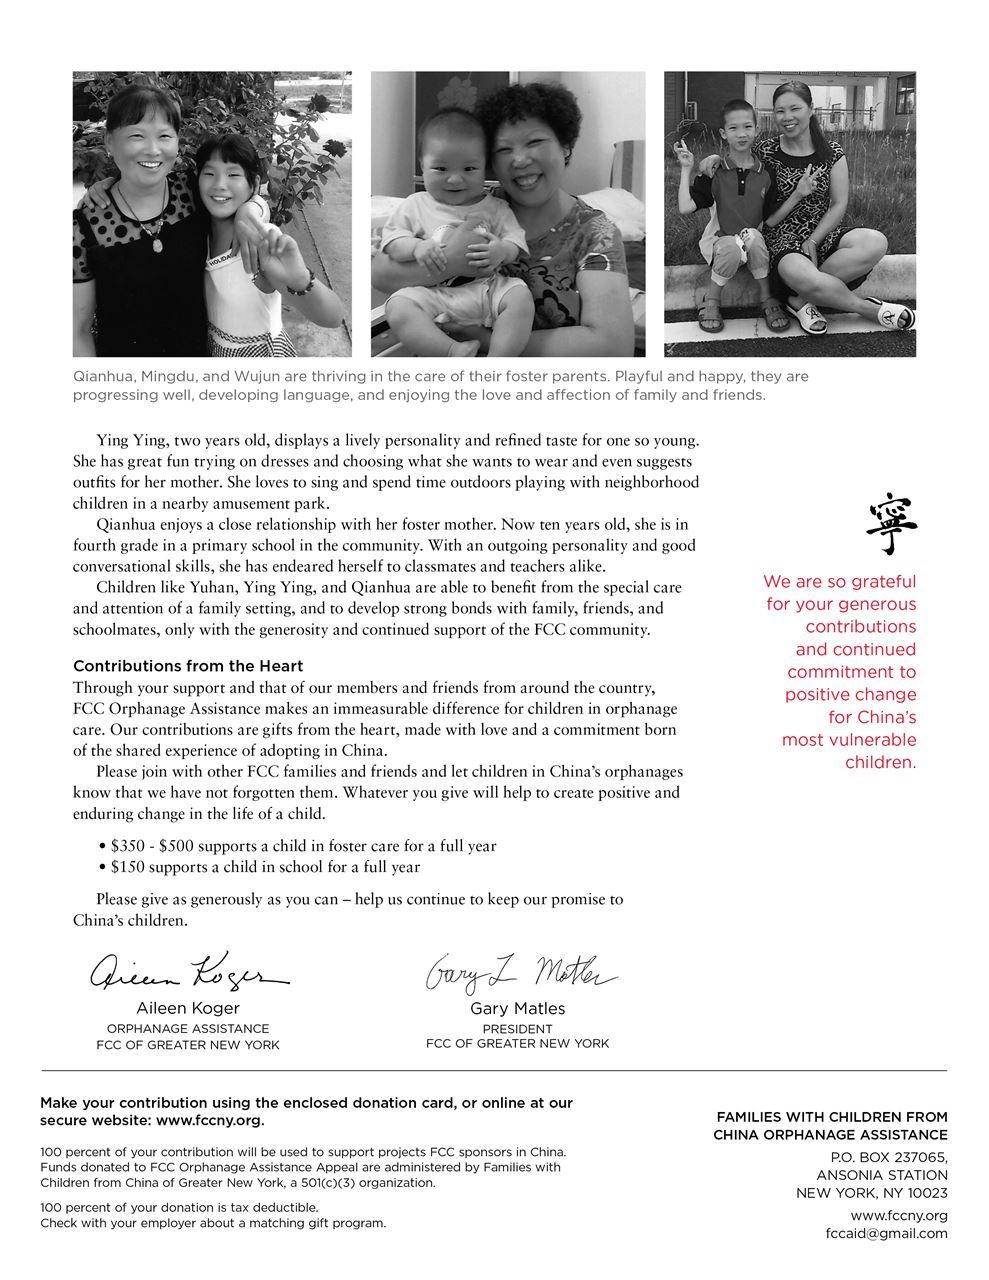 An Appeal From Federation For Children >> Families With Children From China Greater New York Orphanage